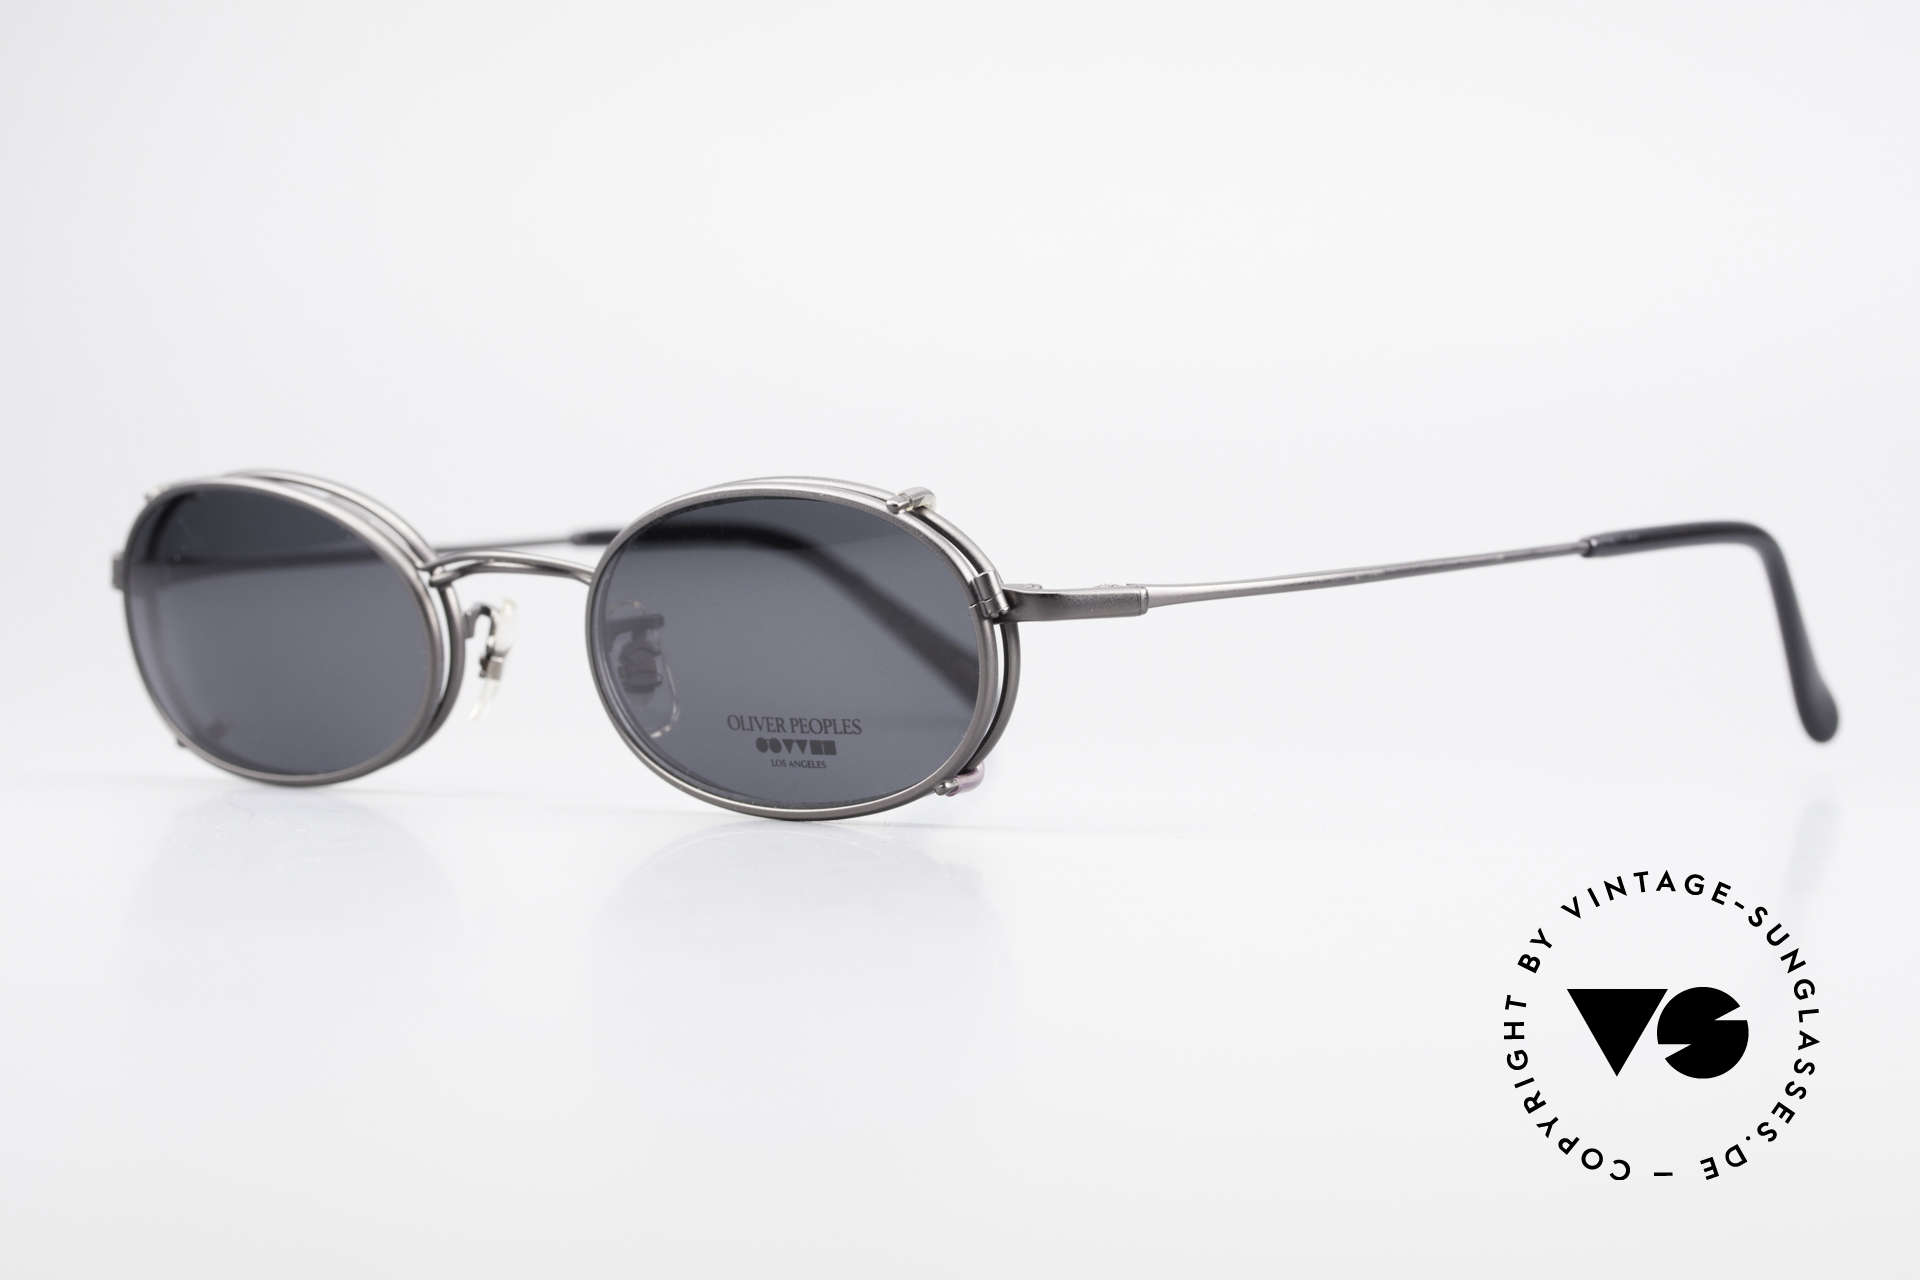 Oliver Peoples OP583 Oval 90's Frame With Sun Clip, timeless, sober, elegant, (with removable Clip On), Made for Men